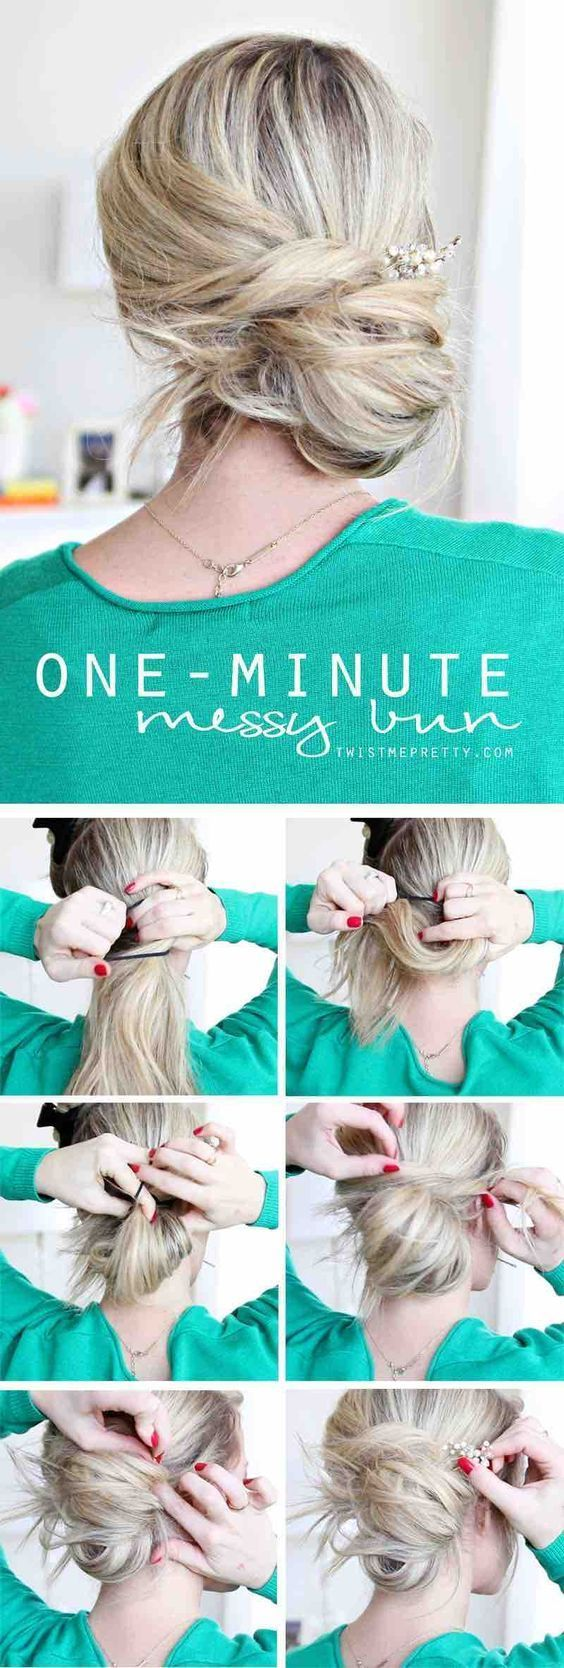 Easy hairstyles for work one minute messy bun quick and easy